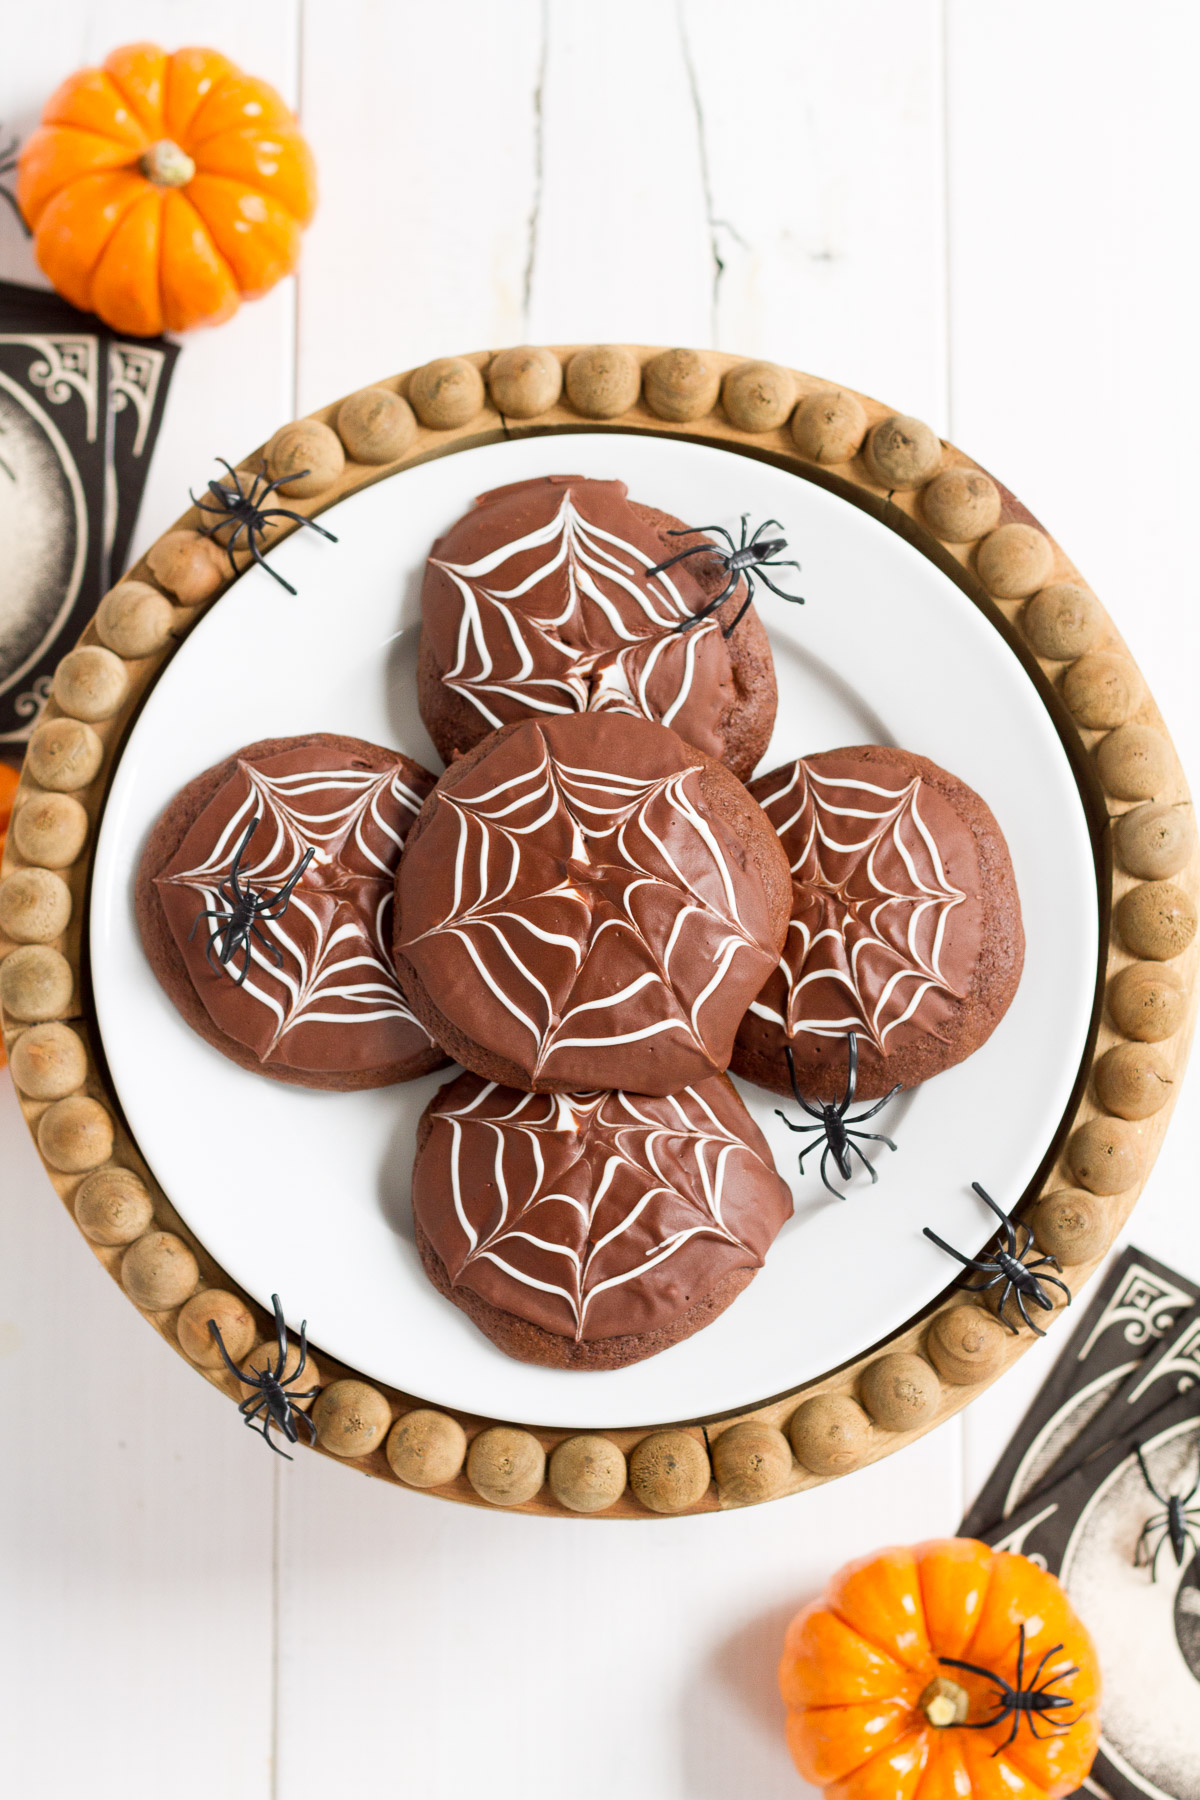 Deliciously cakey chocolate cookies dipped in a rich, homemade chocolate glaze and decorated with white icing spider webs. Perfect for Halloween!